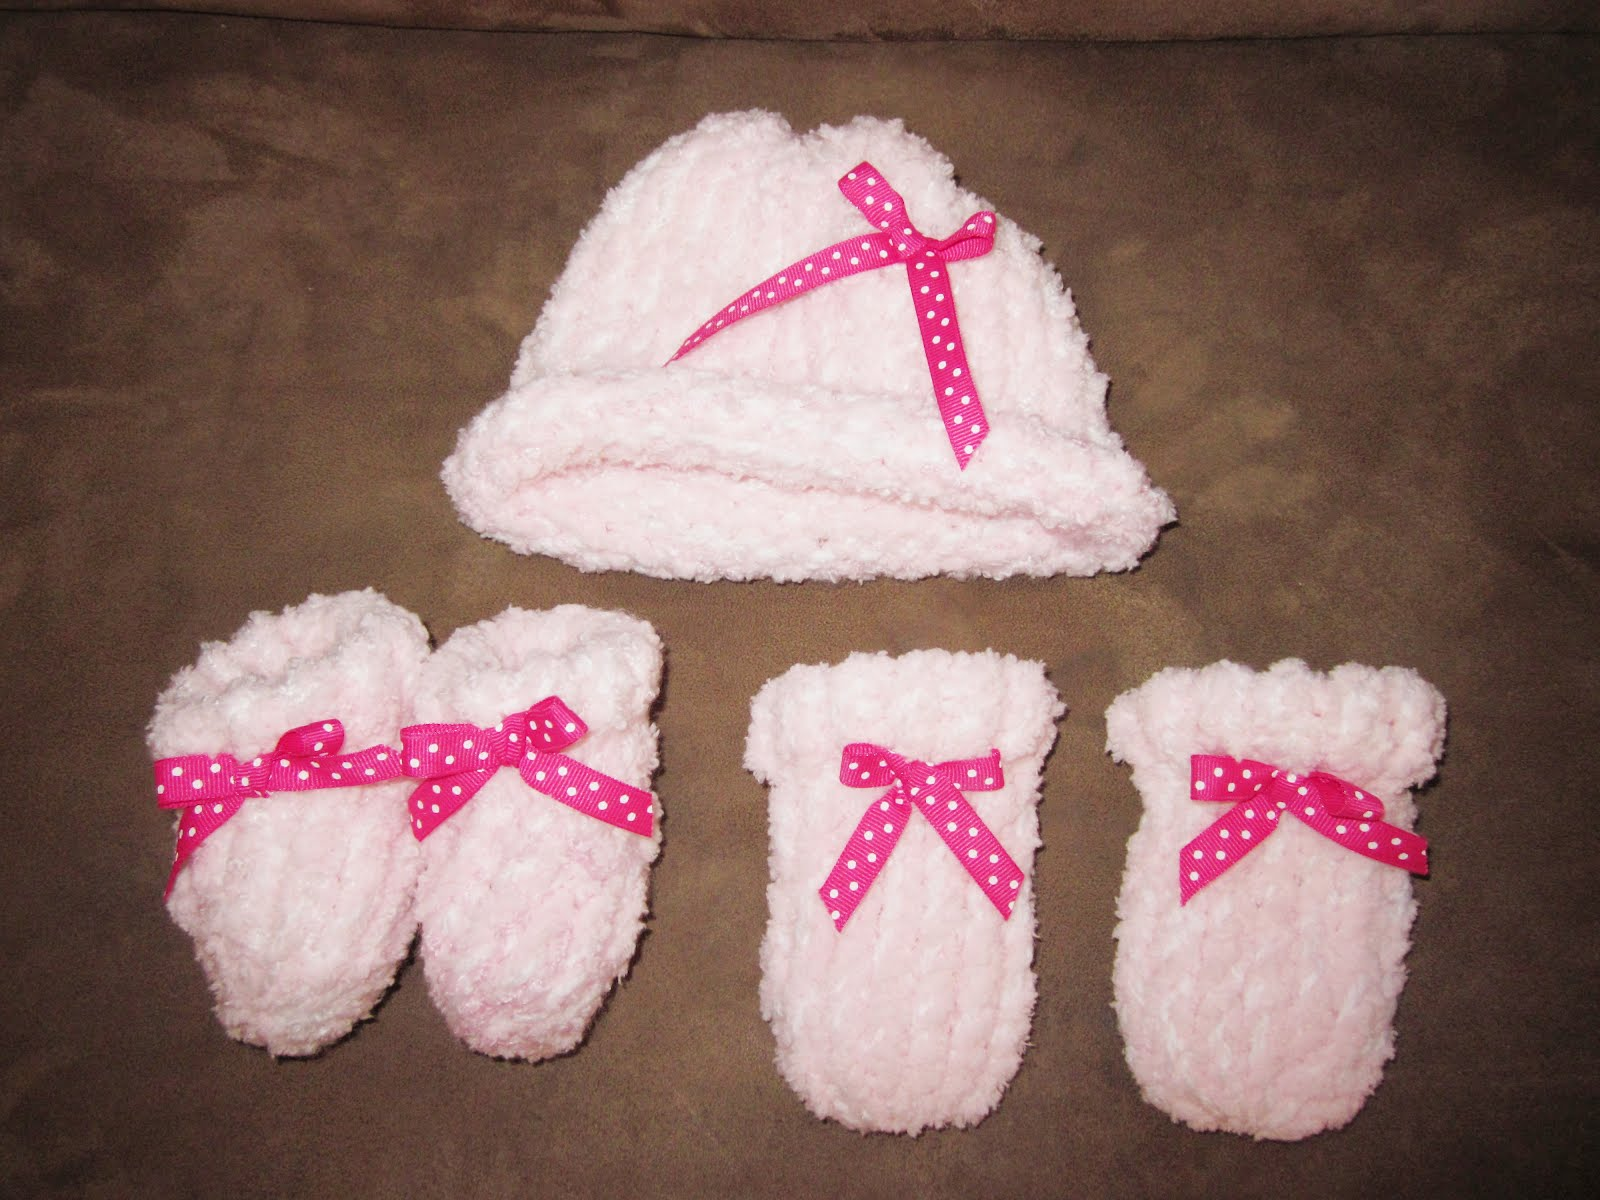 Knitting Pattern For Baby Hat And Mittens : Tricks of the Trade: Loom Knitting, Newborn Baby Hat, Newborn Baby Booties, N...